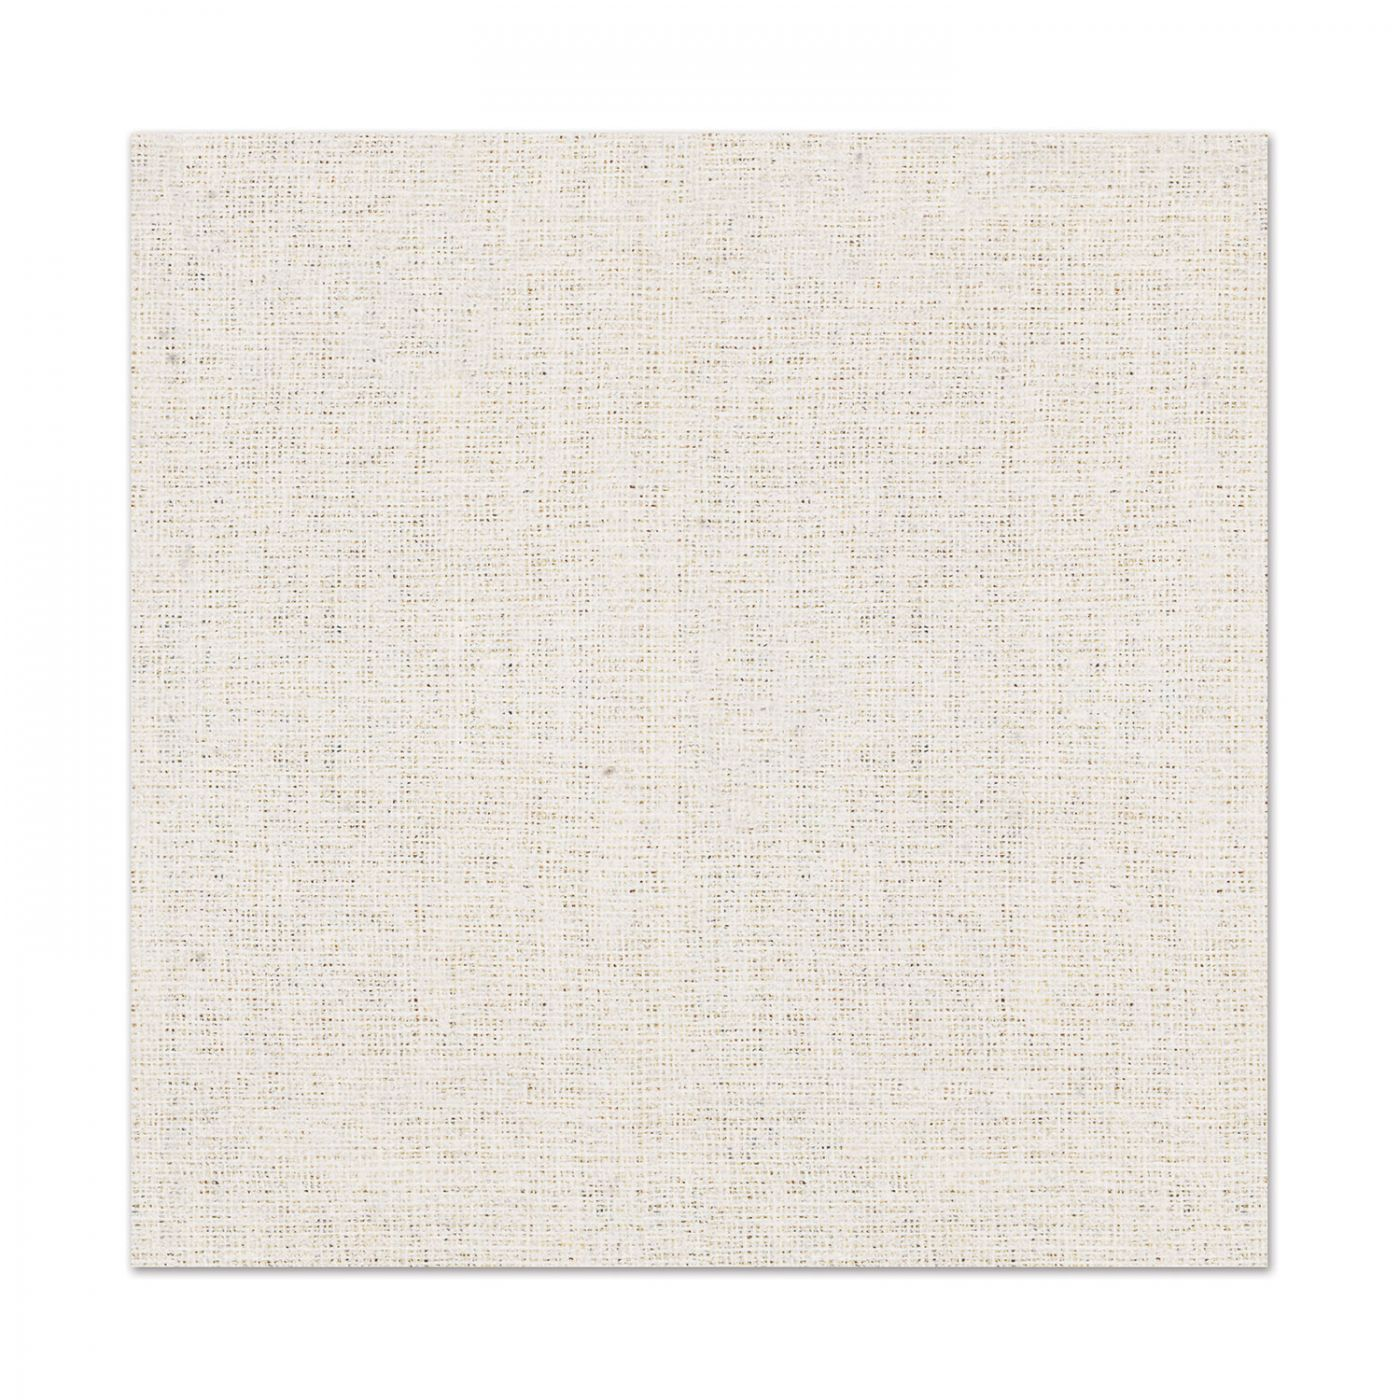 Muslin Paper Luncheon Napkins image